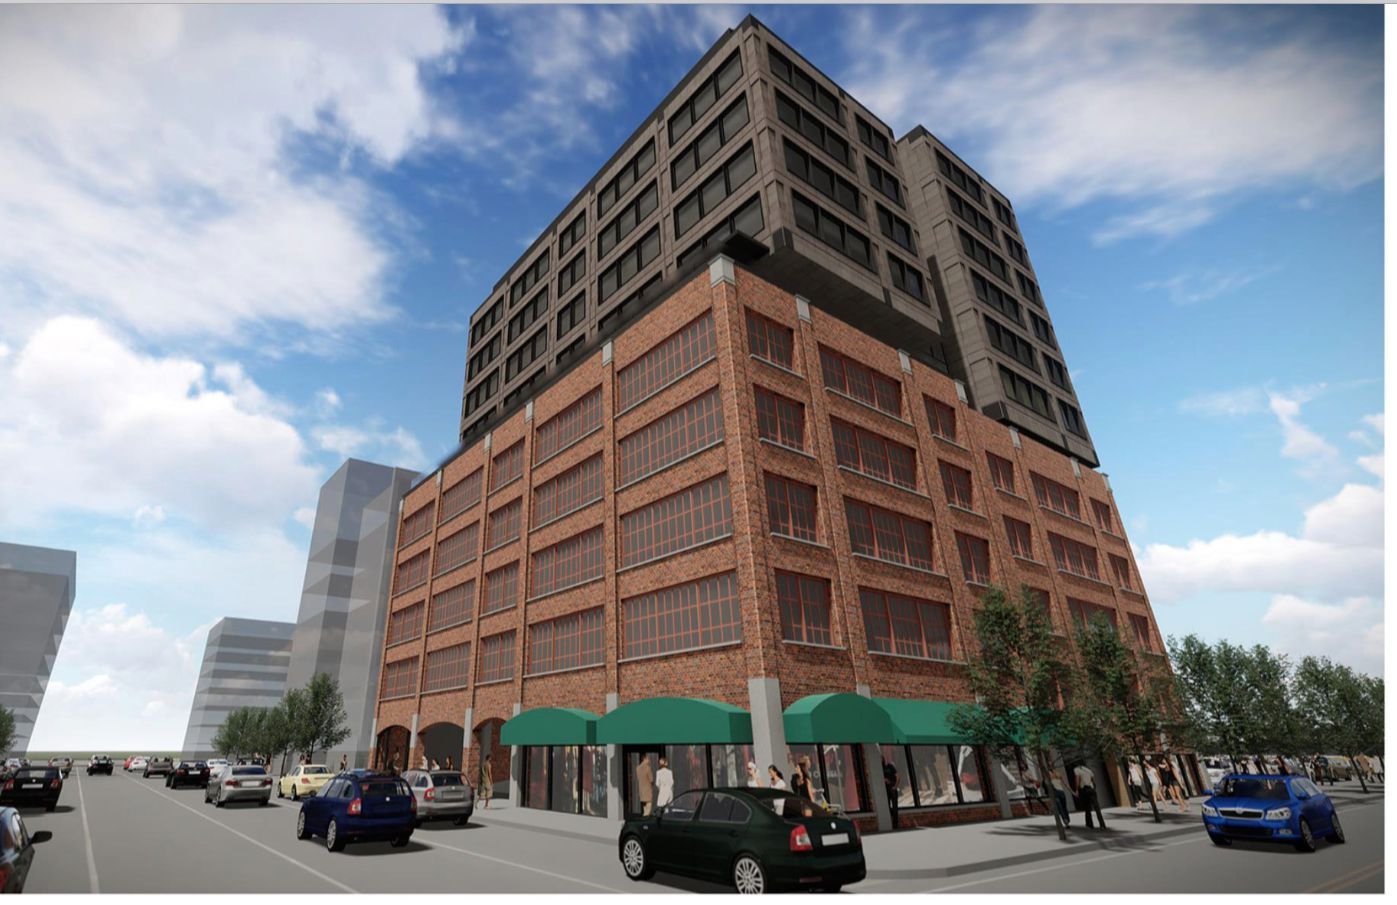 One initial development plan envisioned six floors of hotel rooms on top.